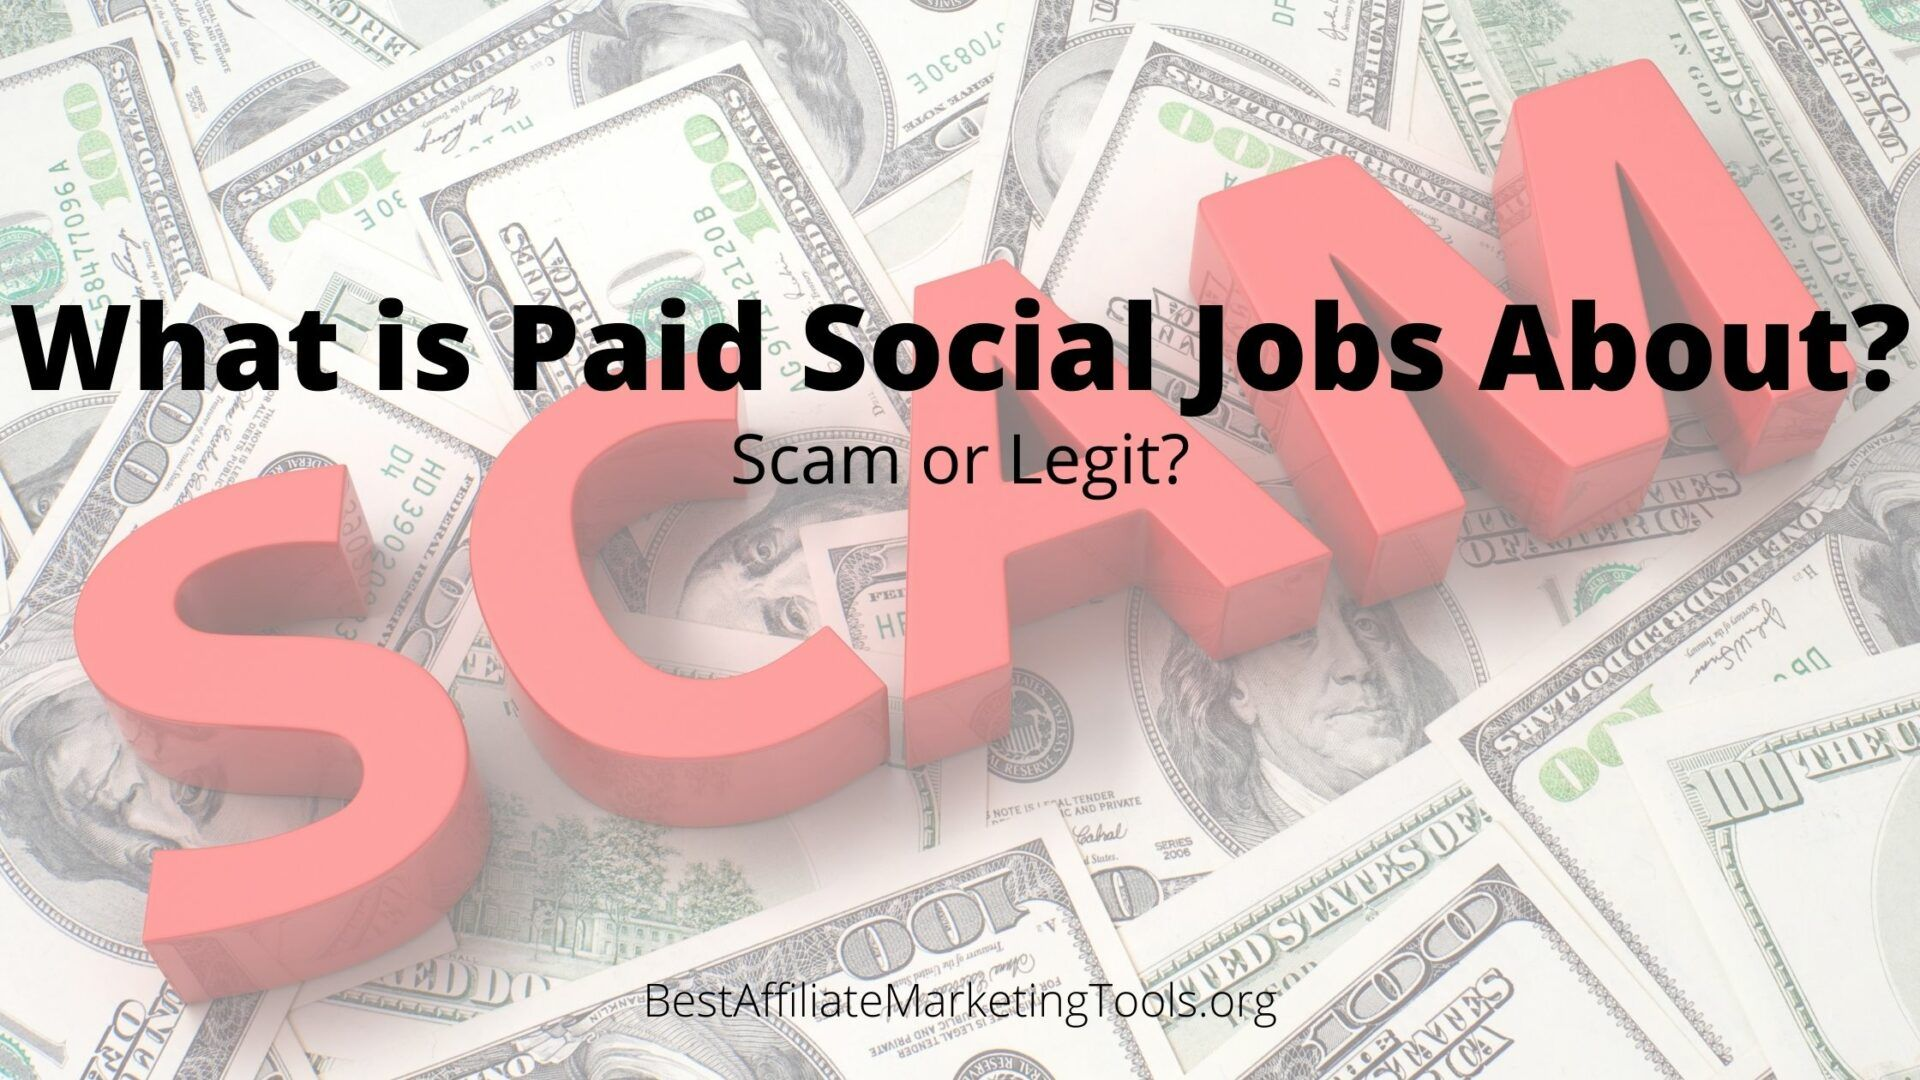 What is Paid Social Jobs About